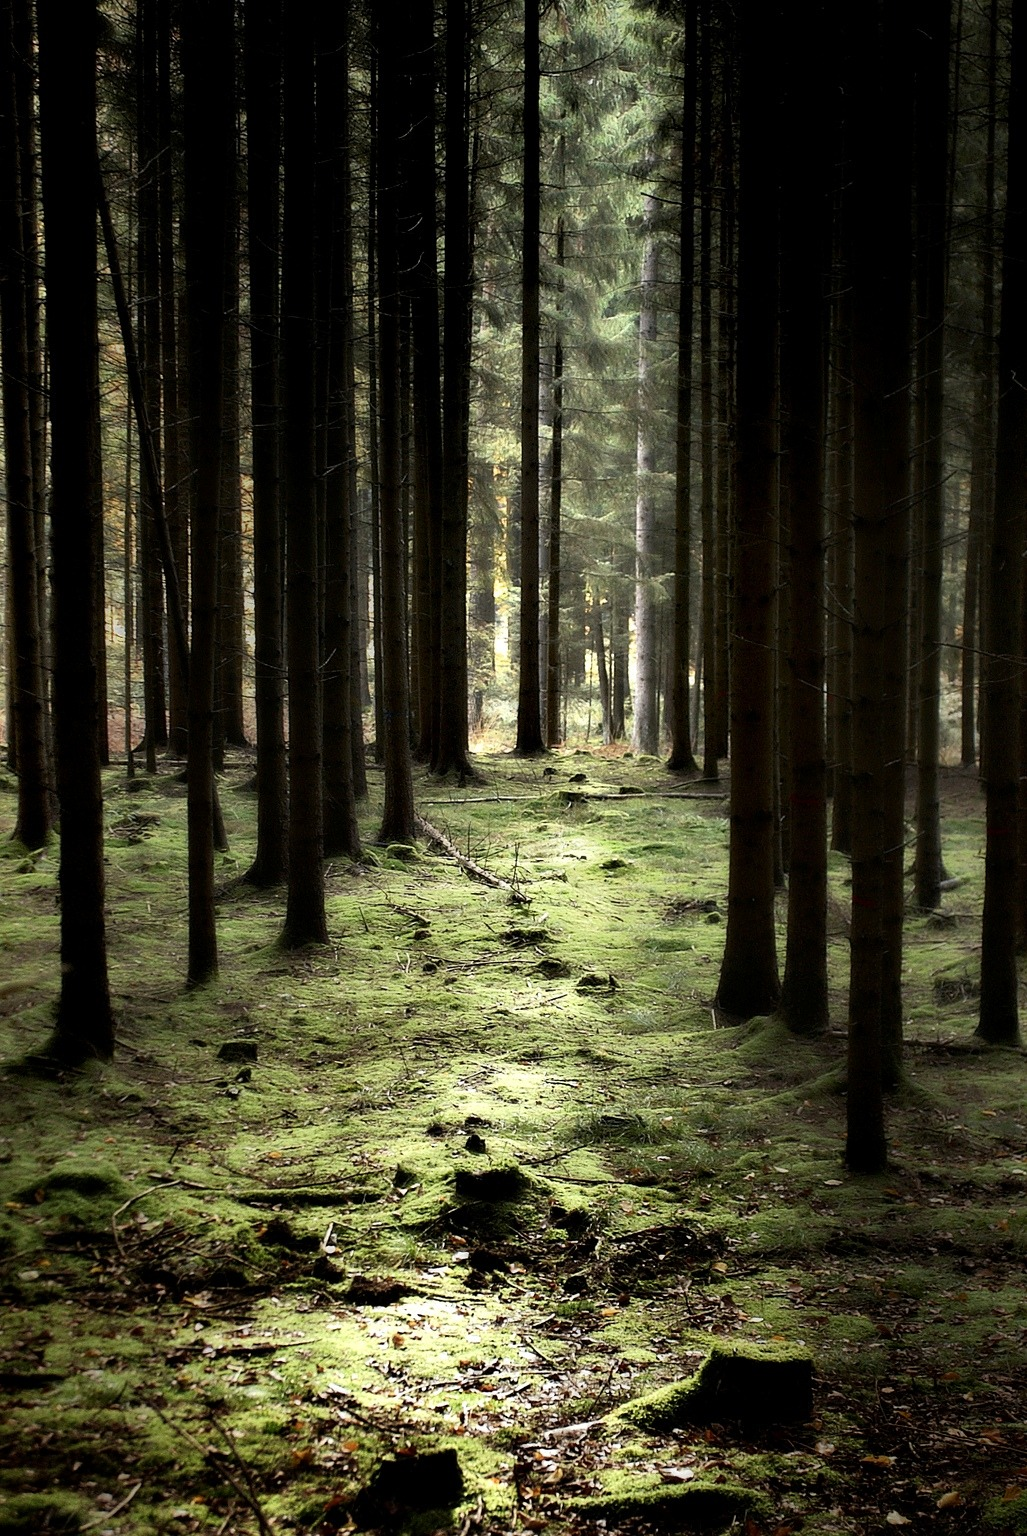 0rient-express:   Trees | by Jörg Marx.